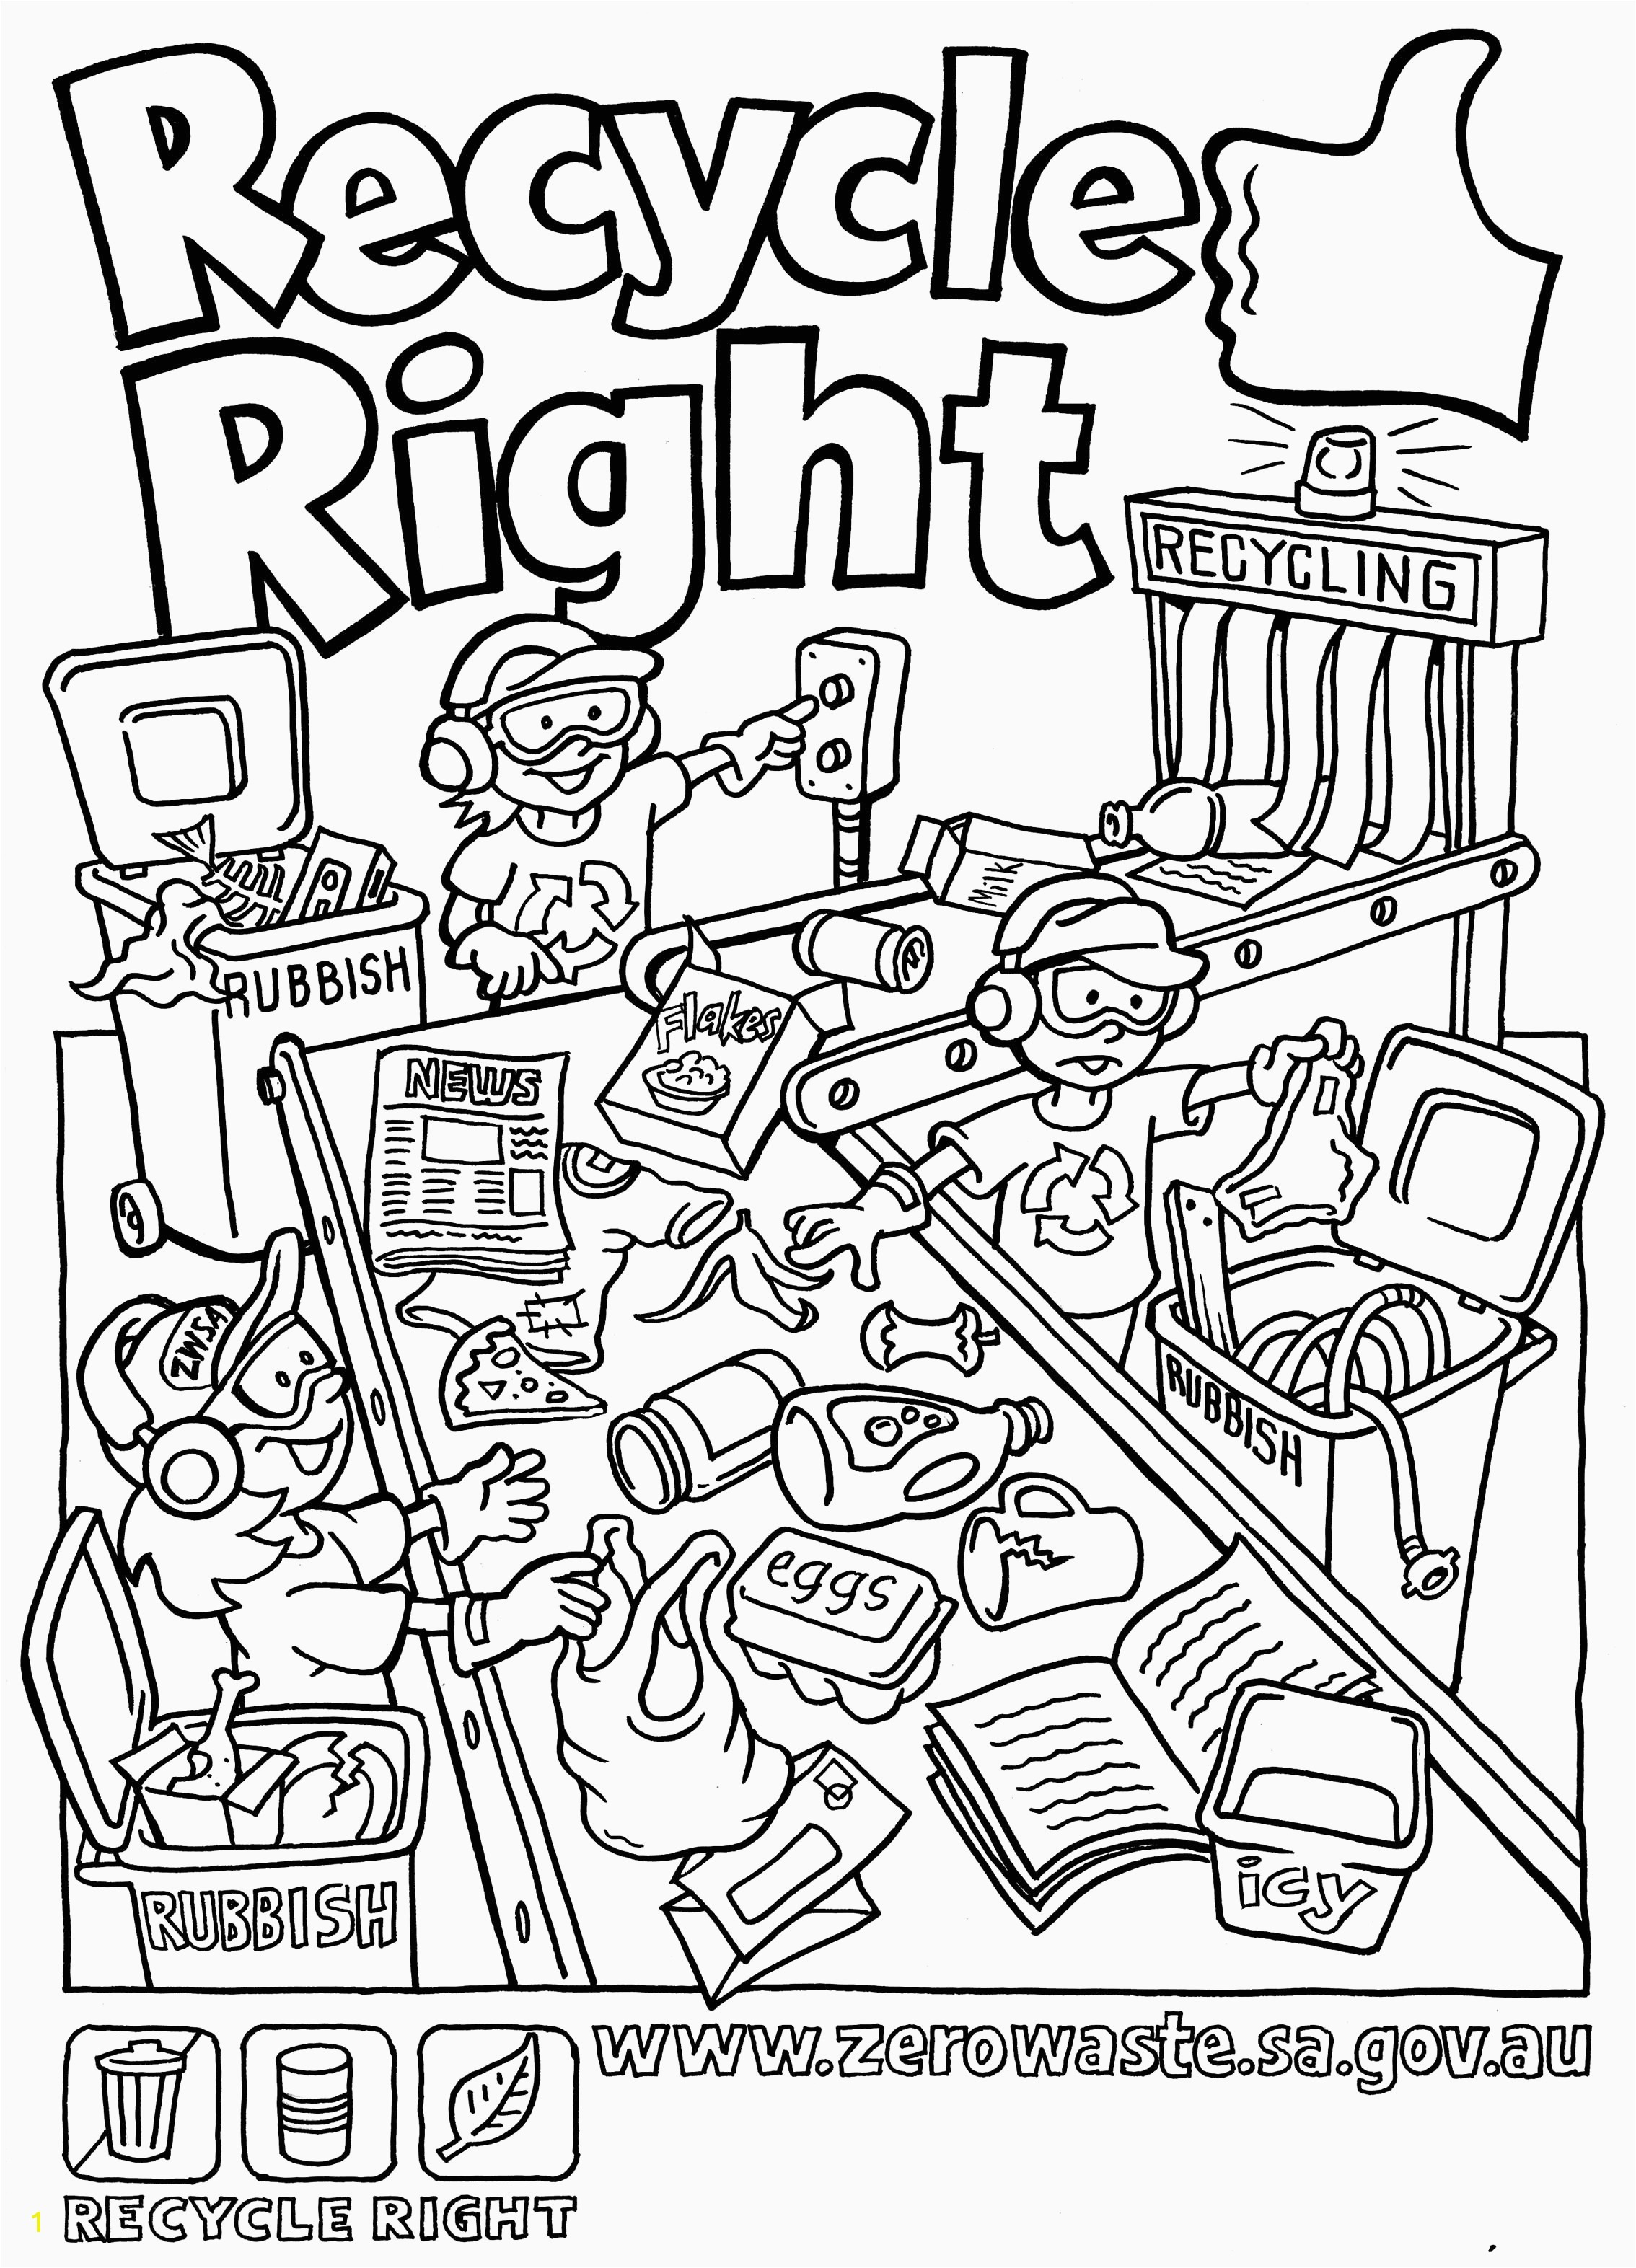 Recycling Coloring Pages For Kids Garbage Can Coloring Pages